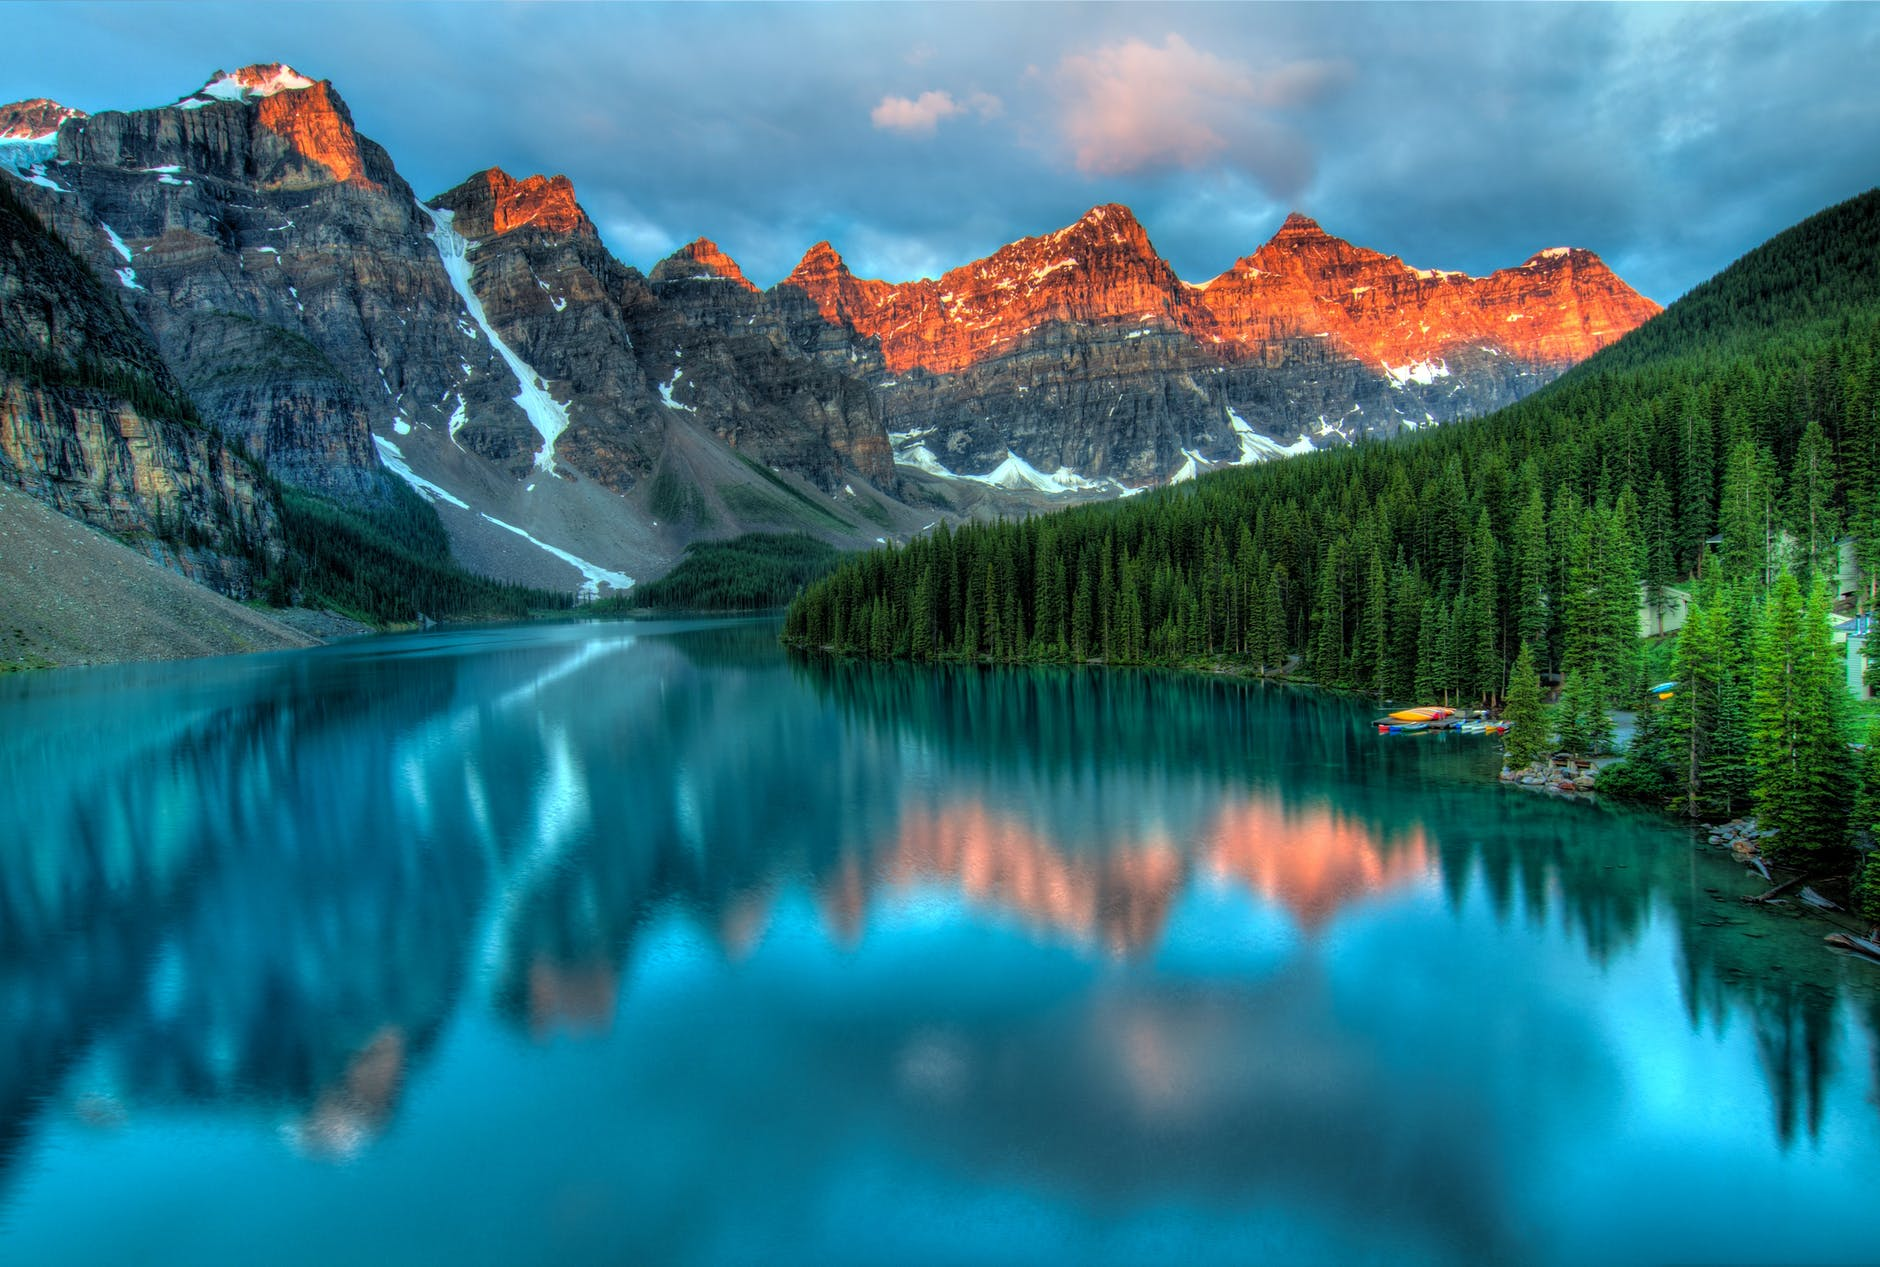 photo of a nature scene with a mountain range, trees, and a body of water